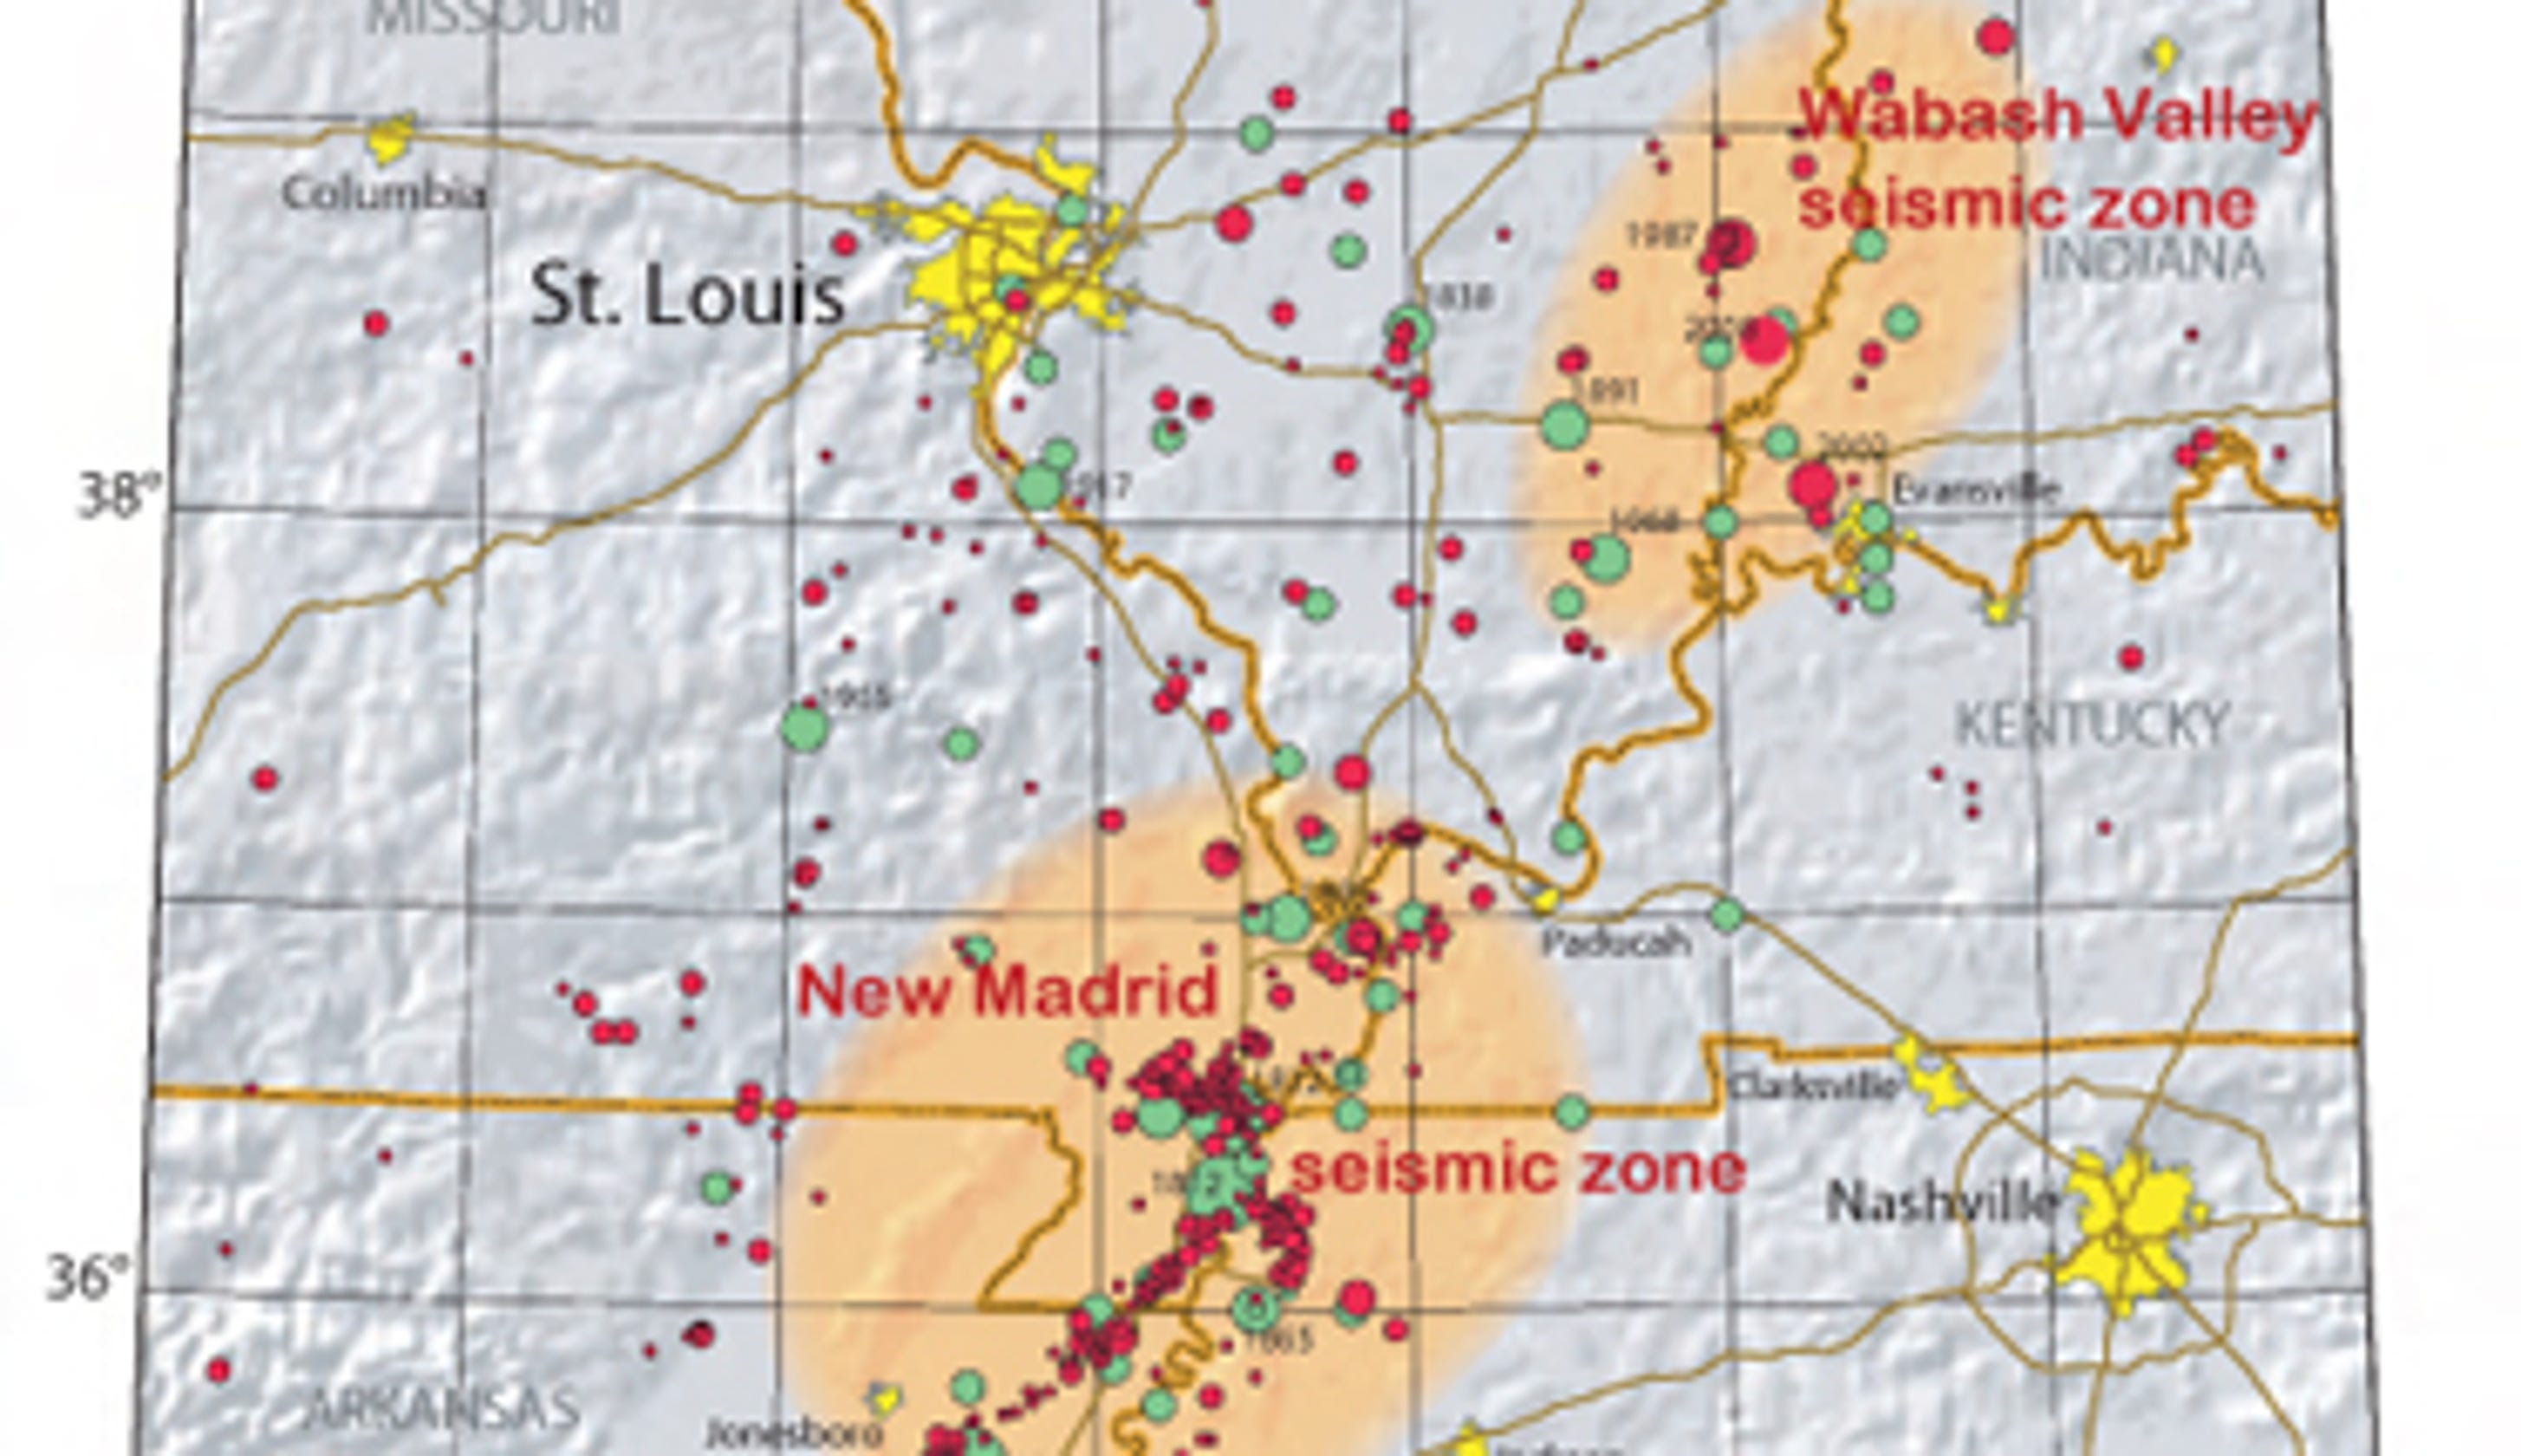 When the New Madrid fault unzips, will you be ready?  Seismic Zone Map Us on seismic risk map, new york state seismic map, seismic category map, ibc seismic classification map, us seismicity map, us wind map, us ground snow load map, us soils map, global seismic hazard map, level 4 seismic zones map, us frost depth map, california seismic hazard zone map, us heating degree days map, ibc zip code map, us rainfall intensity map, seismic activity map, us altitude map, gsa seismic map, 10 fema zones map, earthquake map,